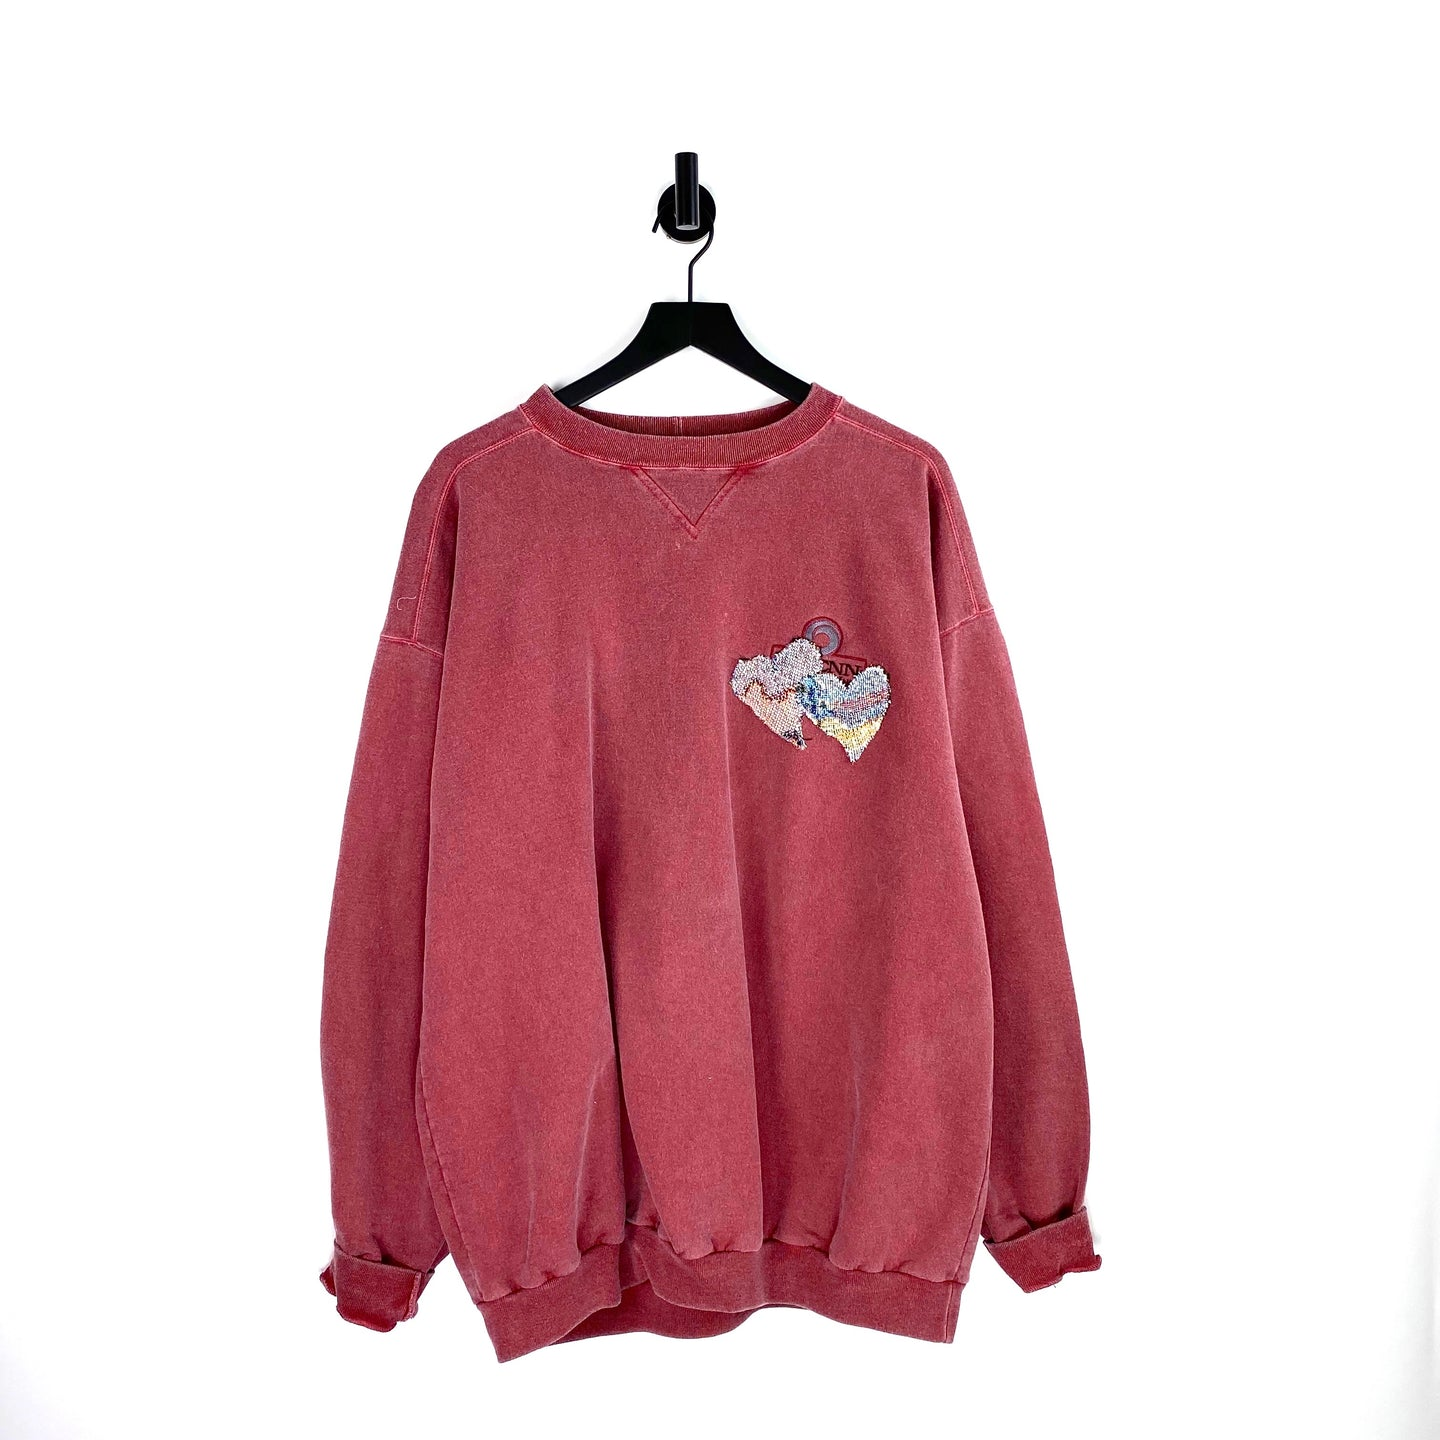 Overdyed Red Sweatshirt - XL